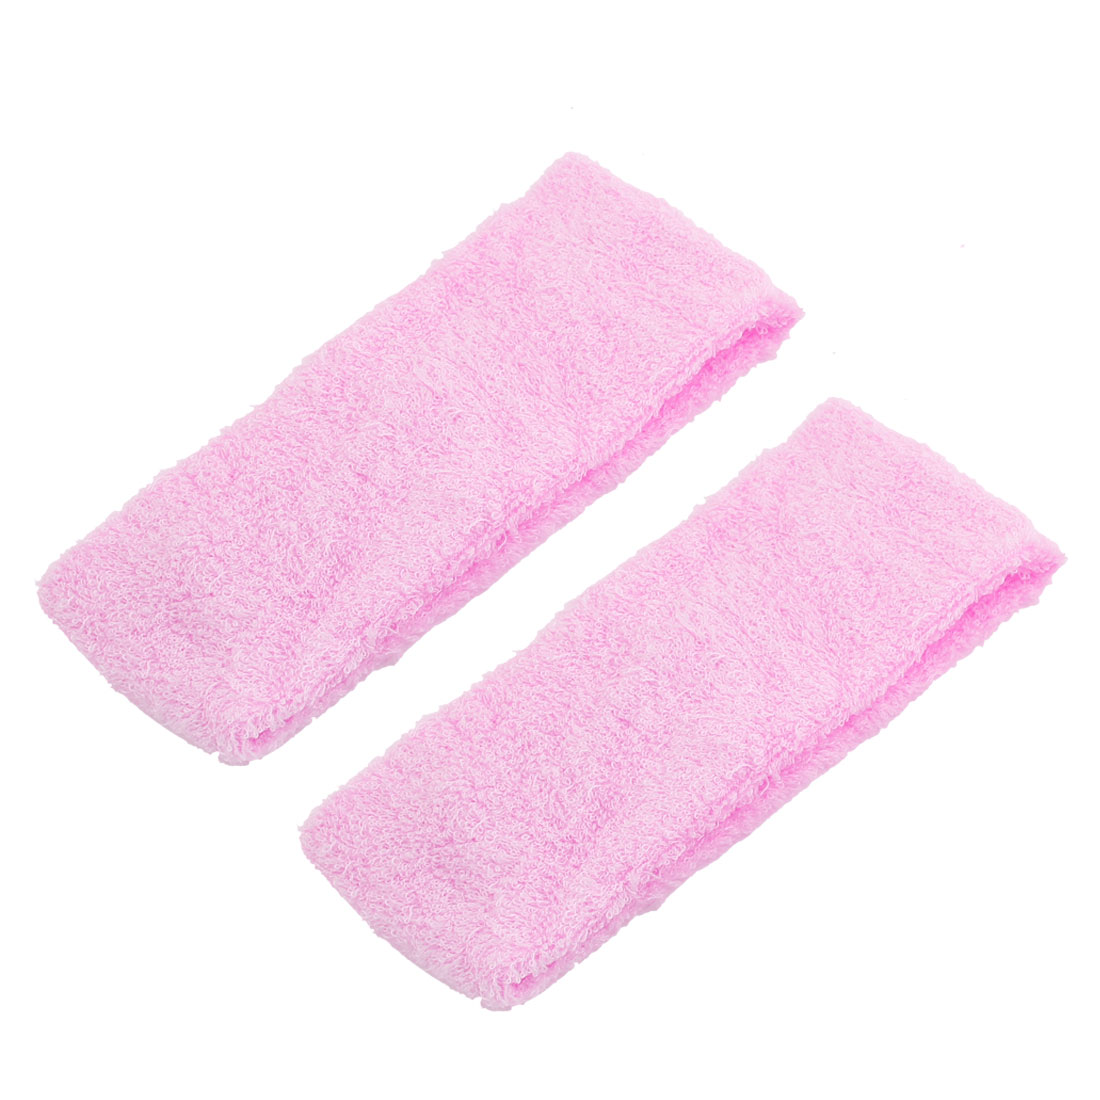 Sports Exercise Light Pink Elastic Absorbent Head Bands Wraps Headbands 2 Pcs for Women